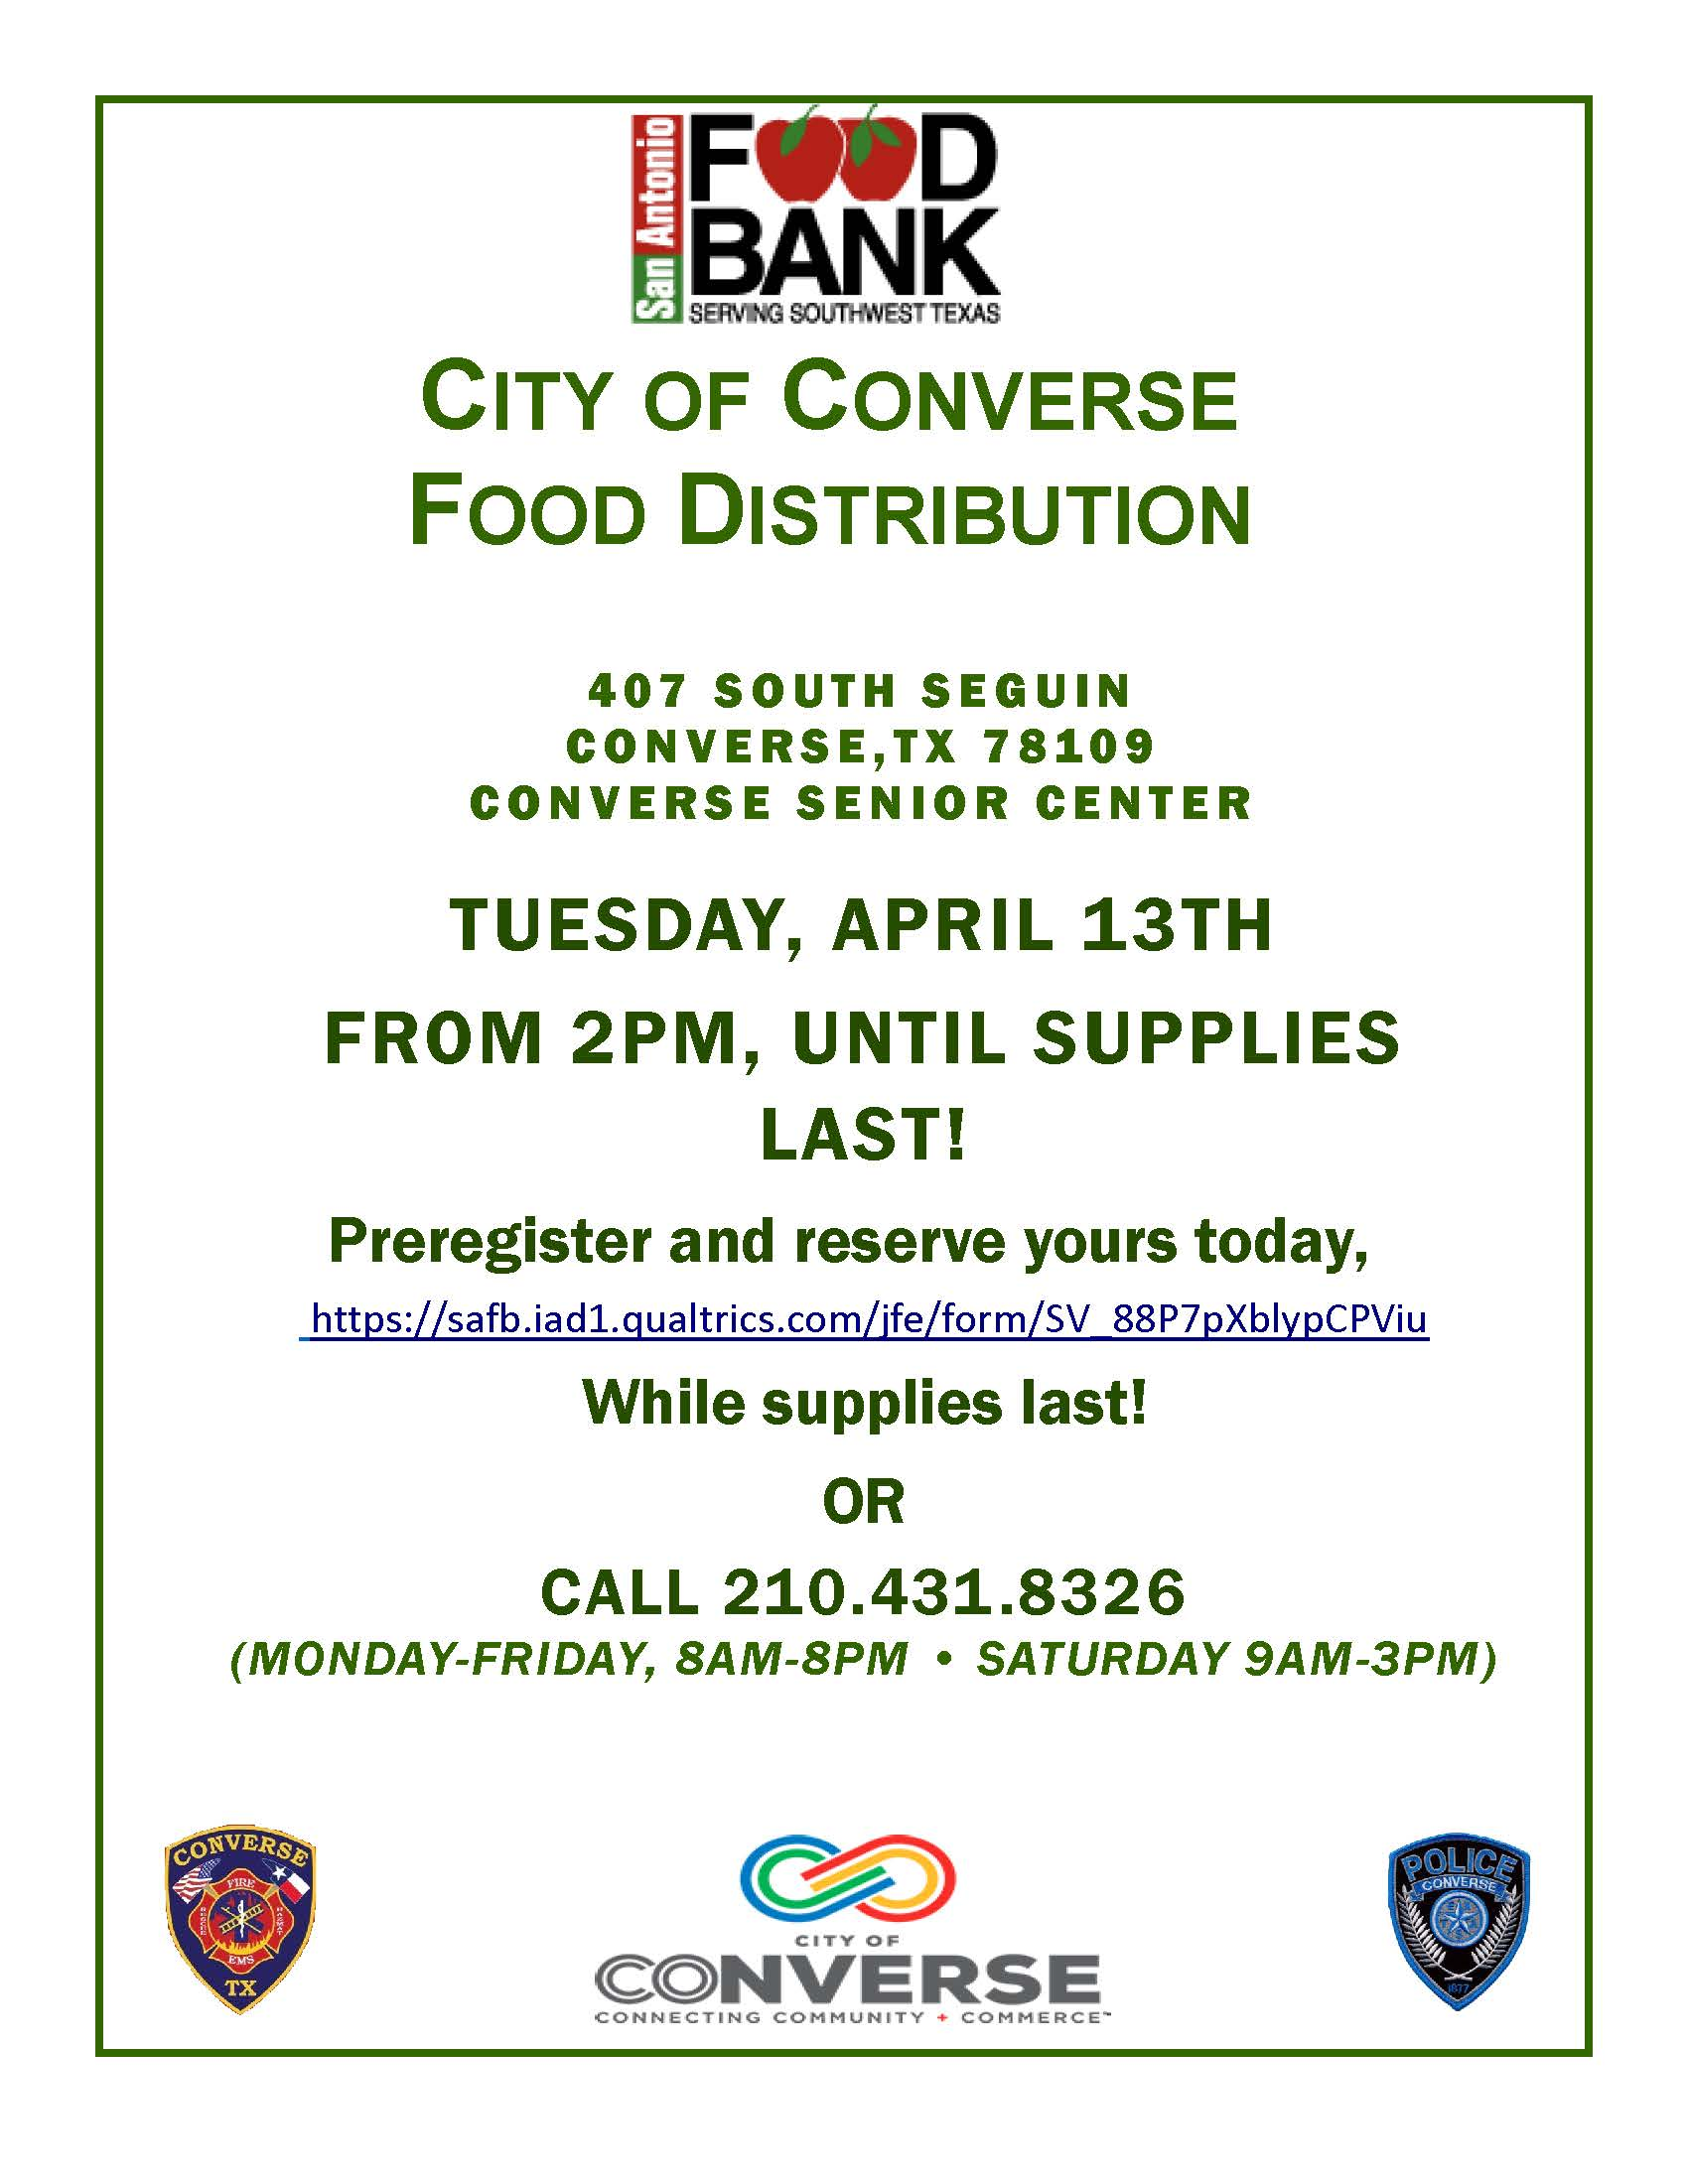 Food Bank Distribution Flyer